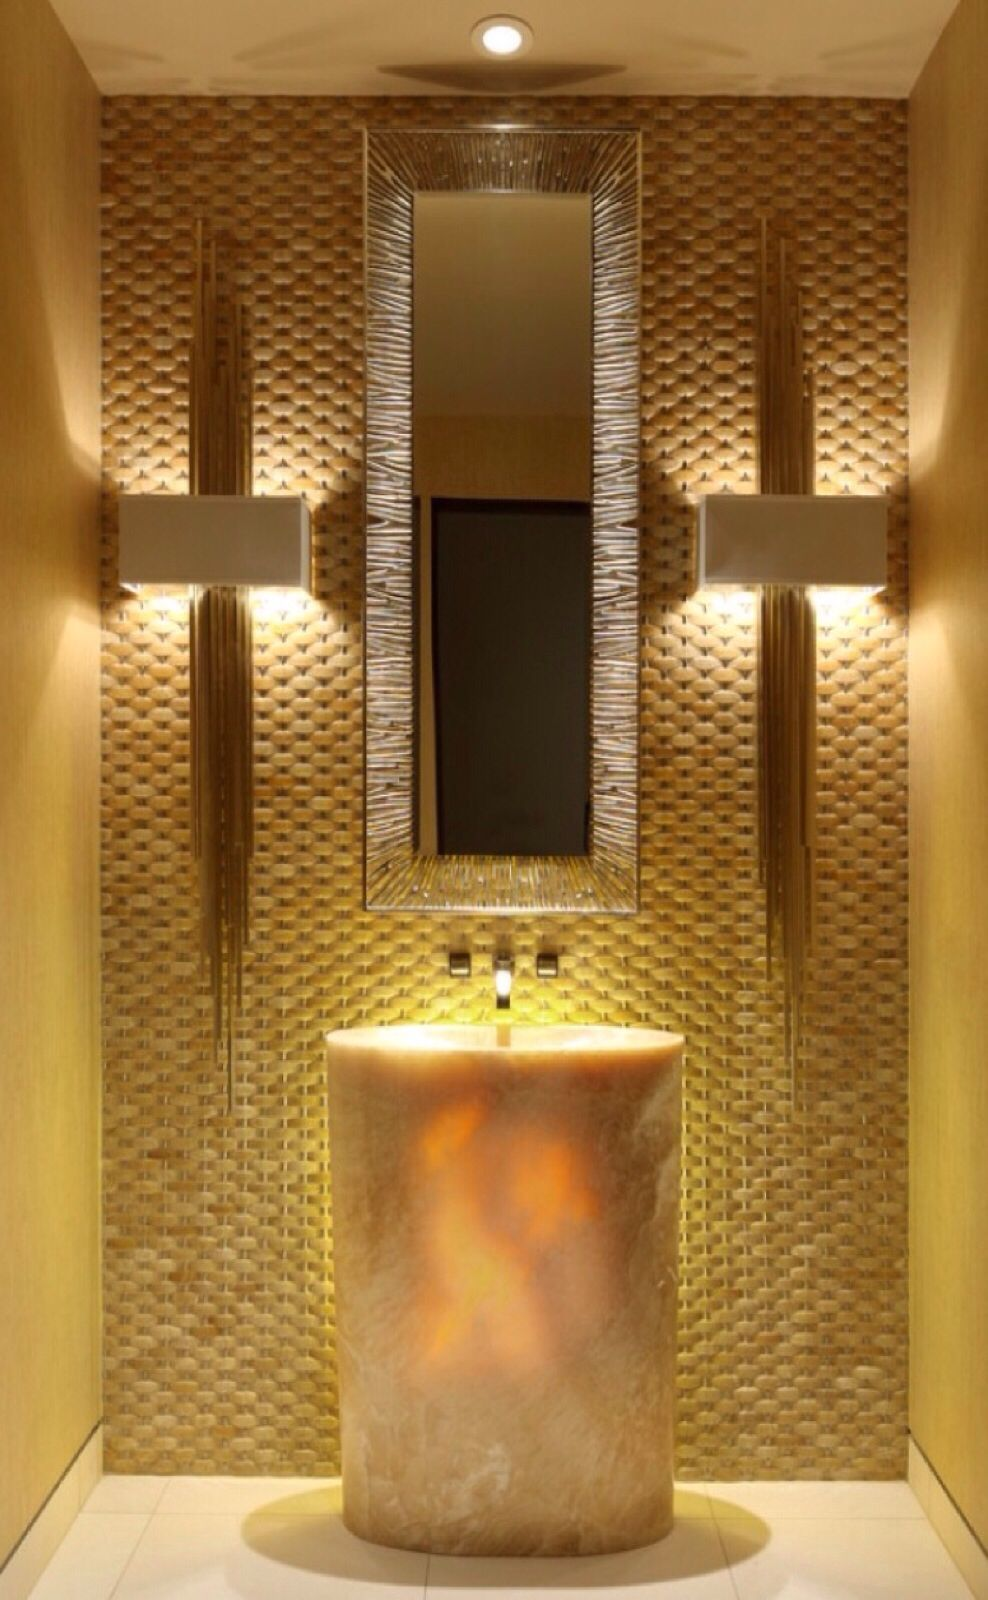 Bathroom Remodel Ideas You Must See For Your Lovely Home For The